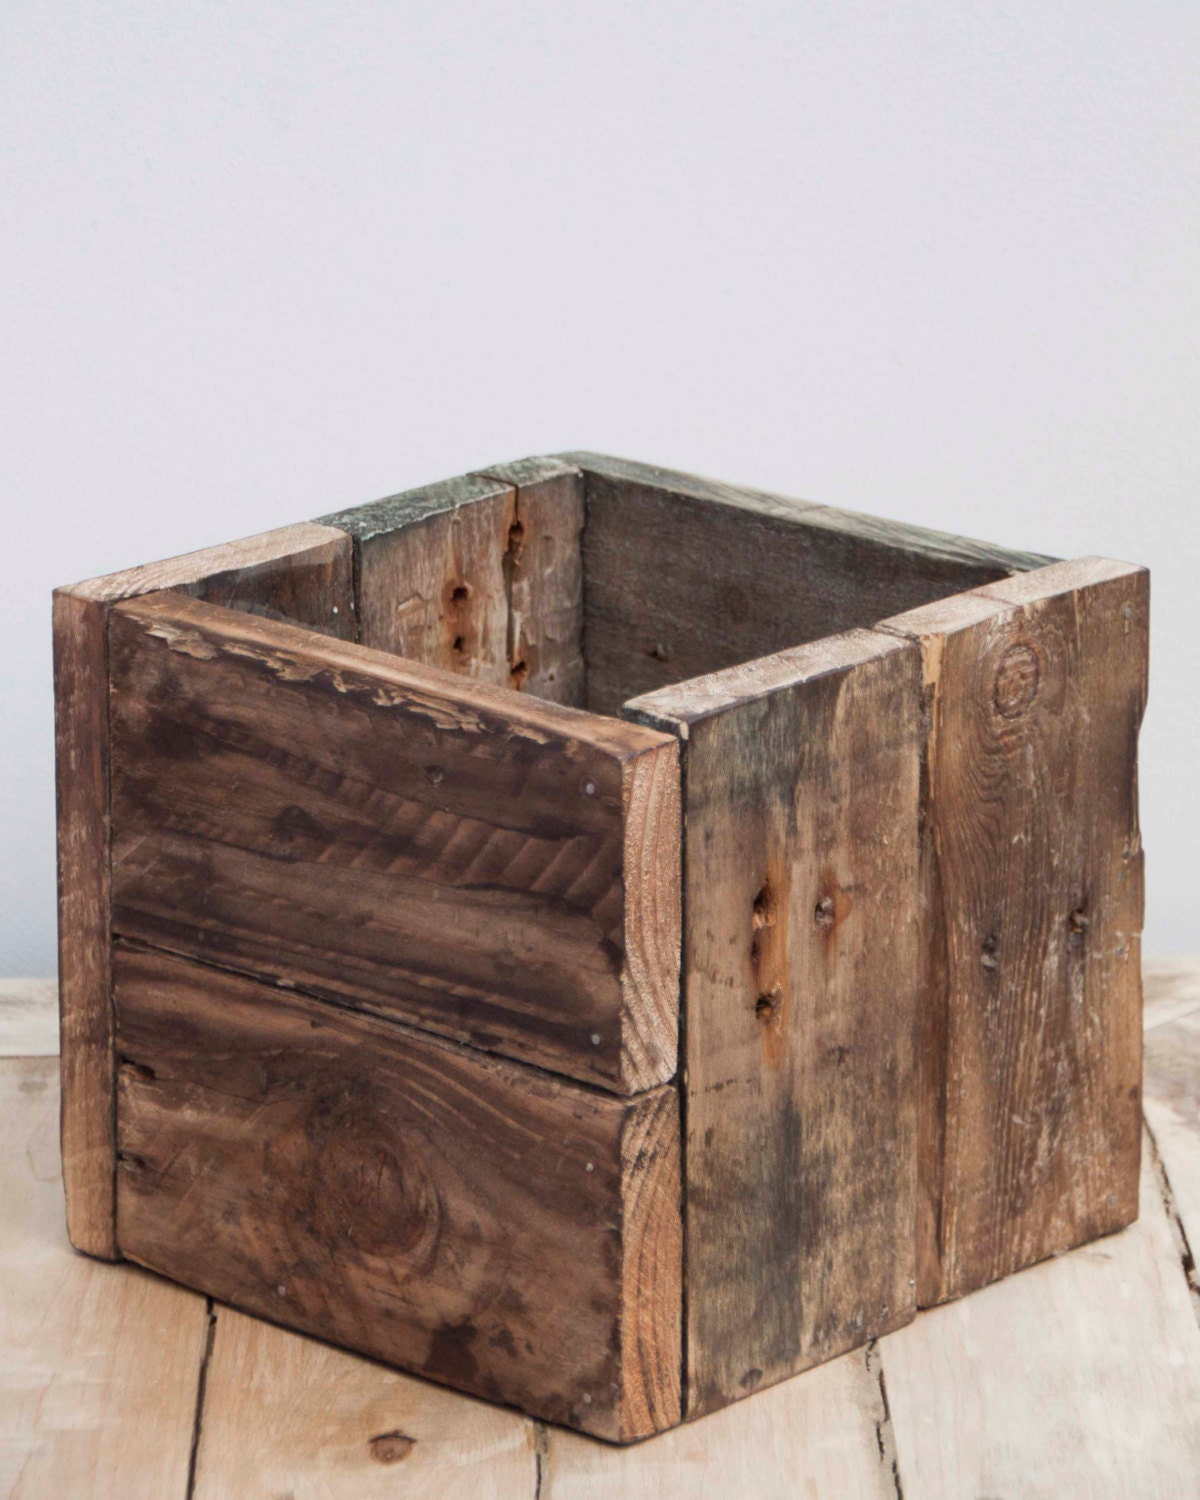 Large rustic wooden box